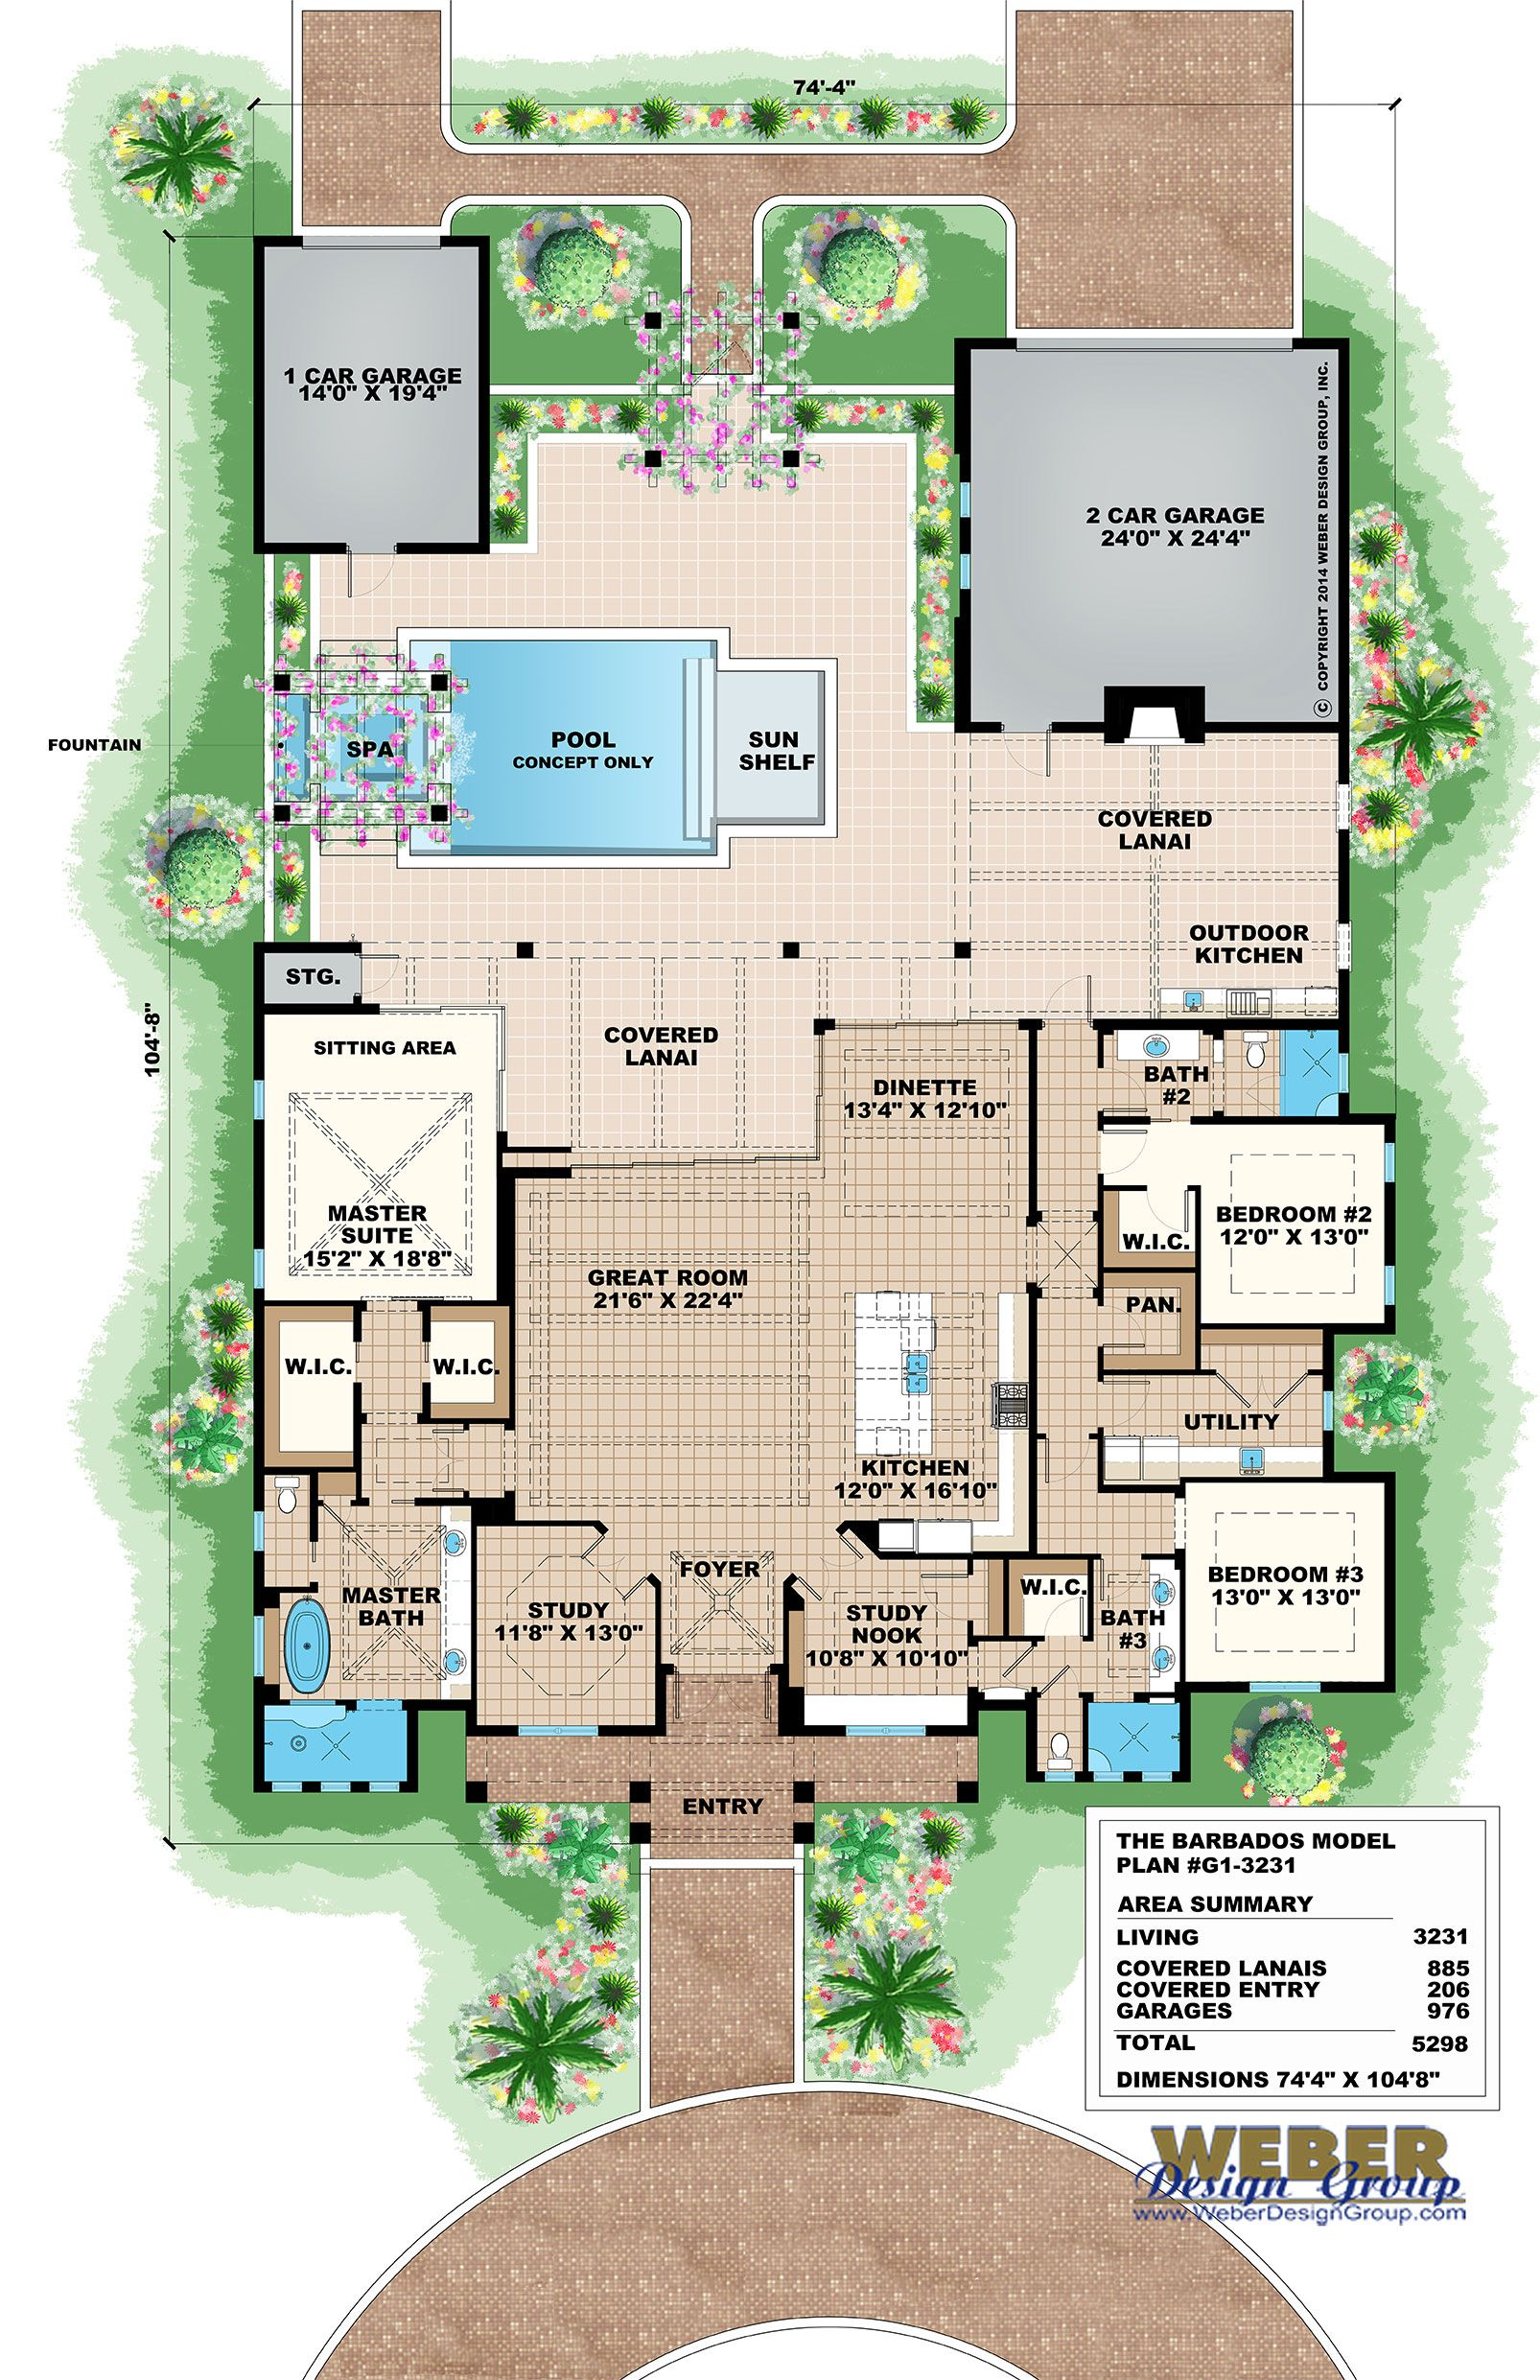 Beach House Plan Old Florida Coastal West Indies Style Floor Plan Florida House Plans Coastal House Plans Beach Style House Plans